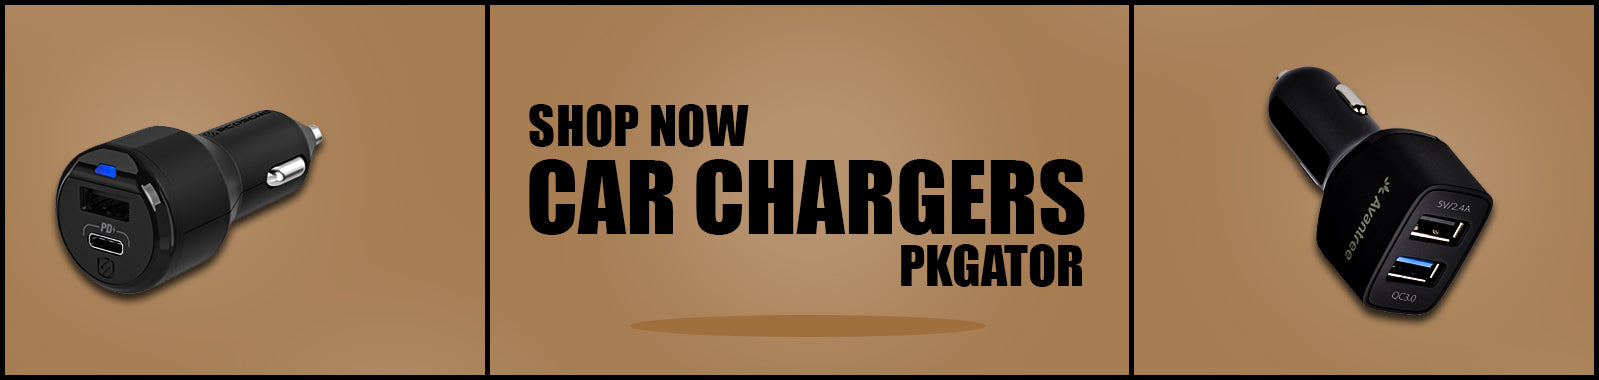 Car Charger Price in Pakistan